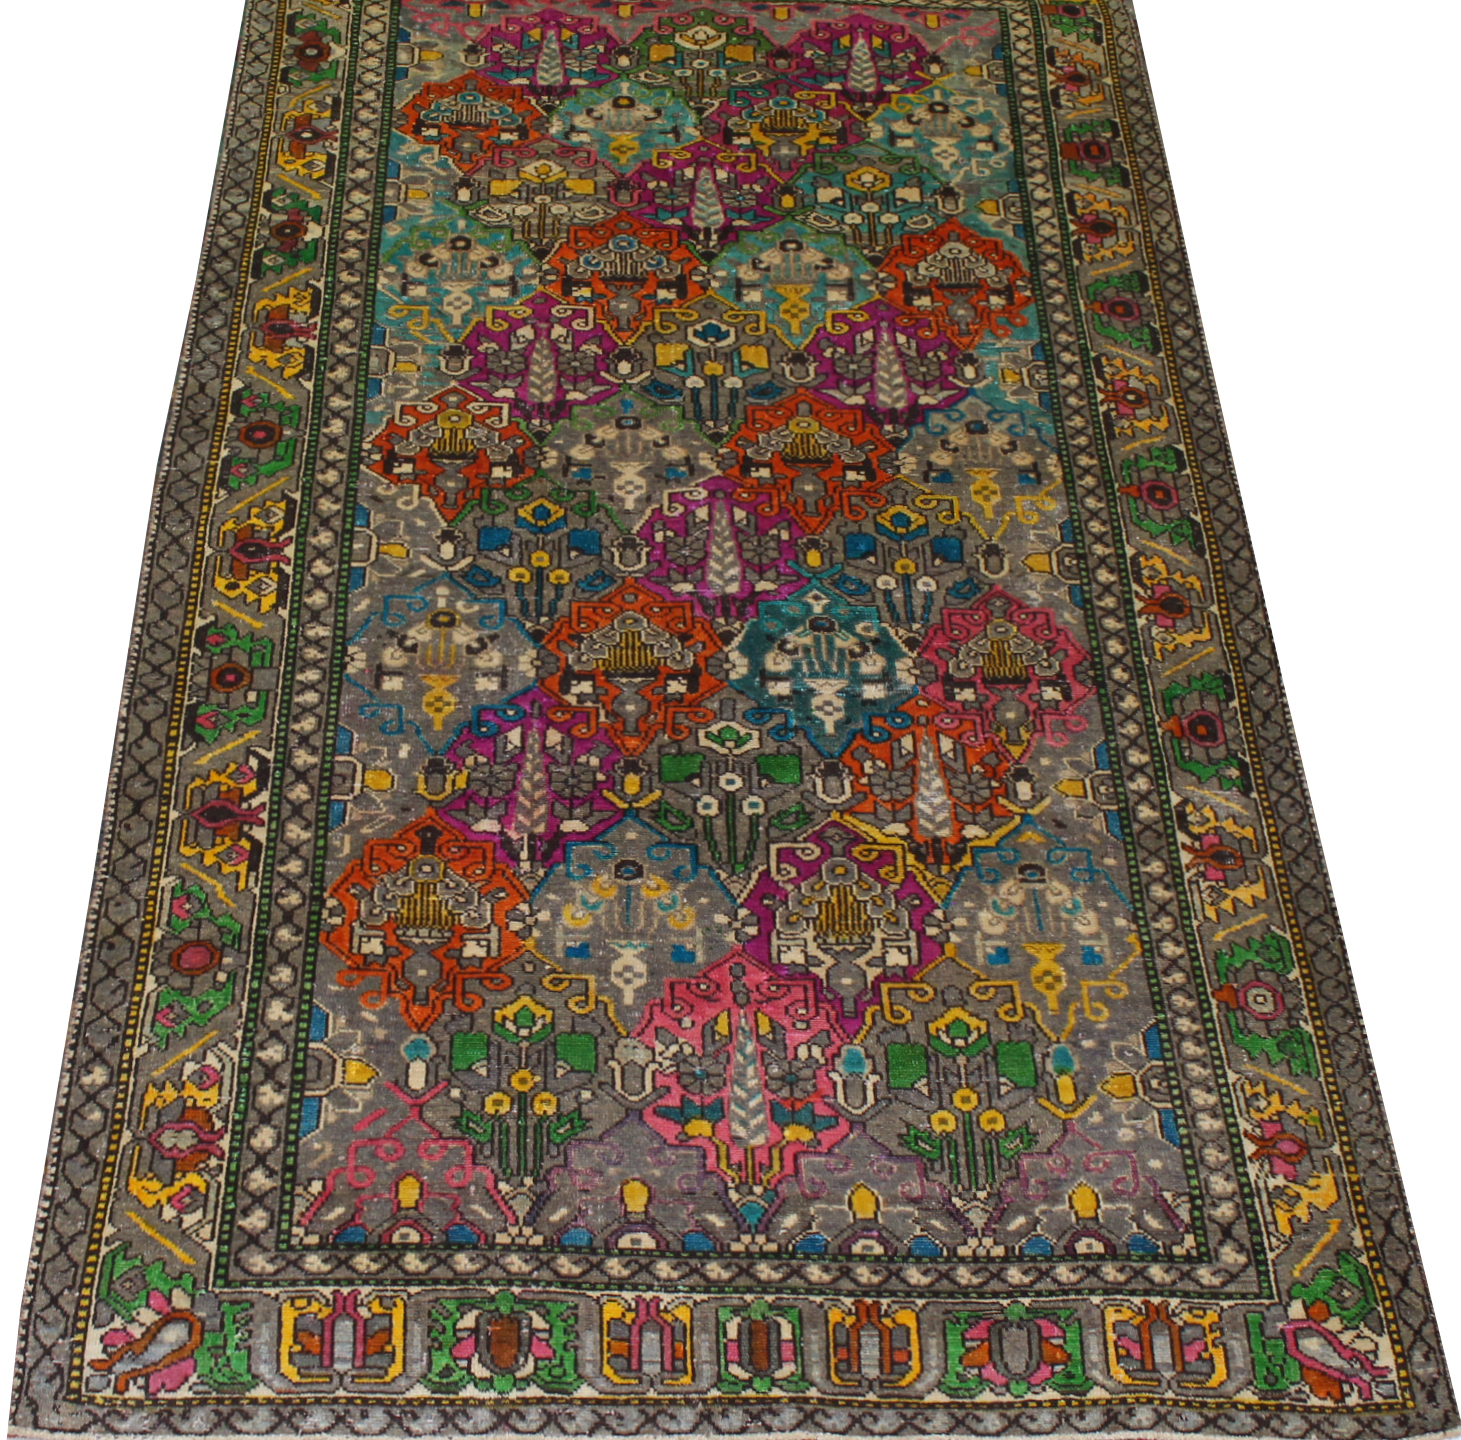 6x9 Vintage Hand Knotted Wool Area Rug - MR023738